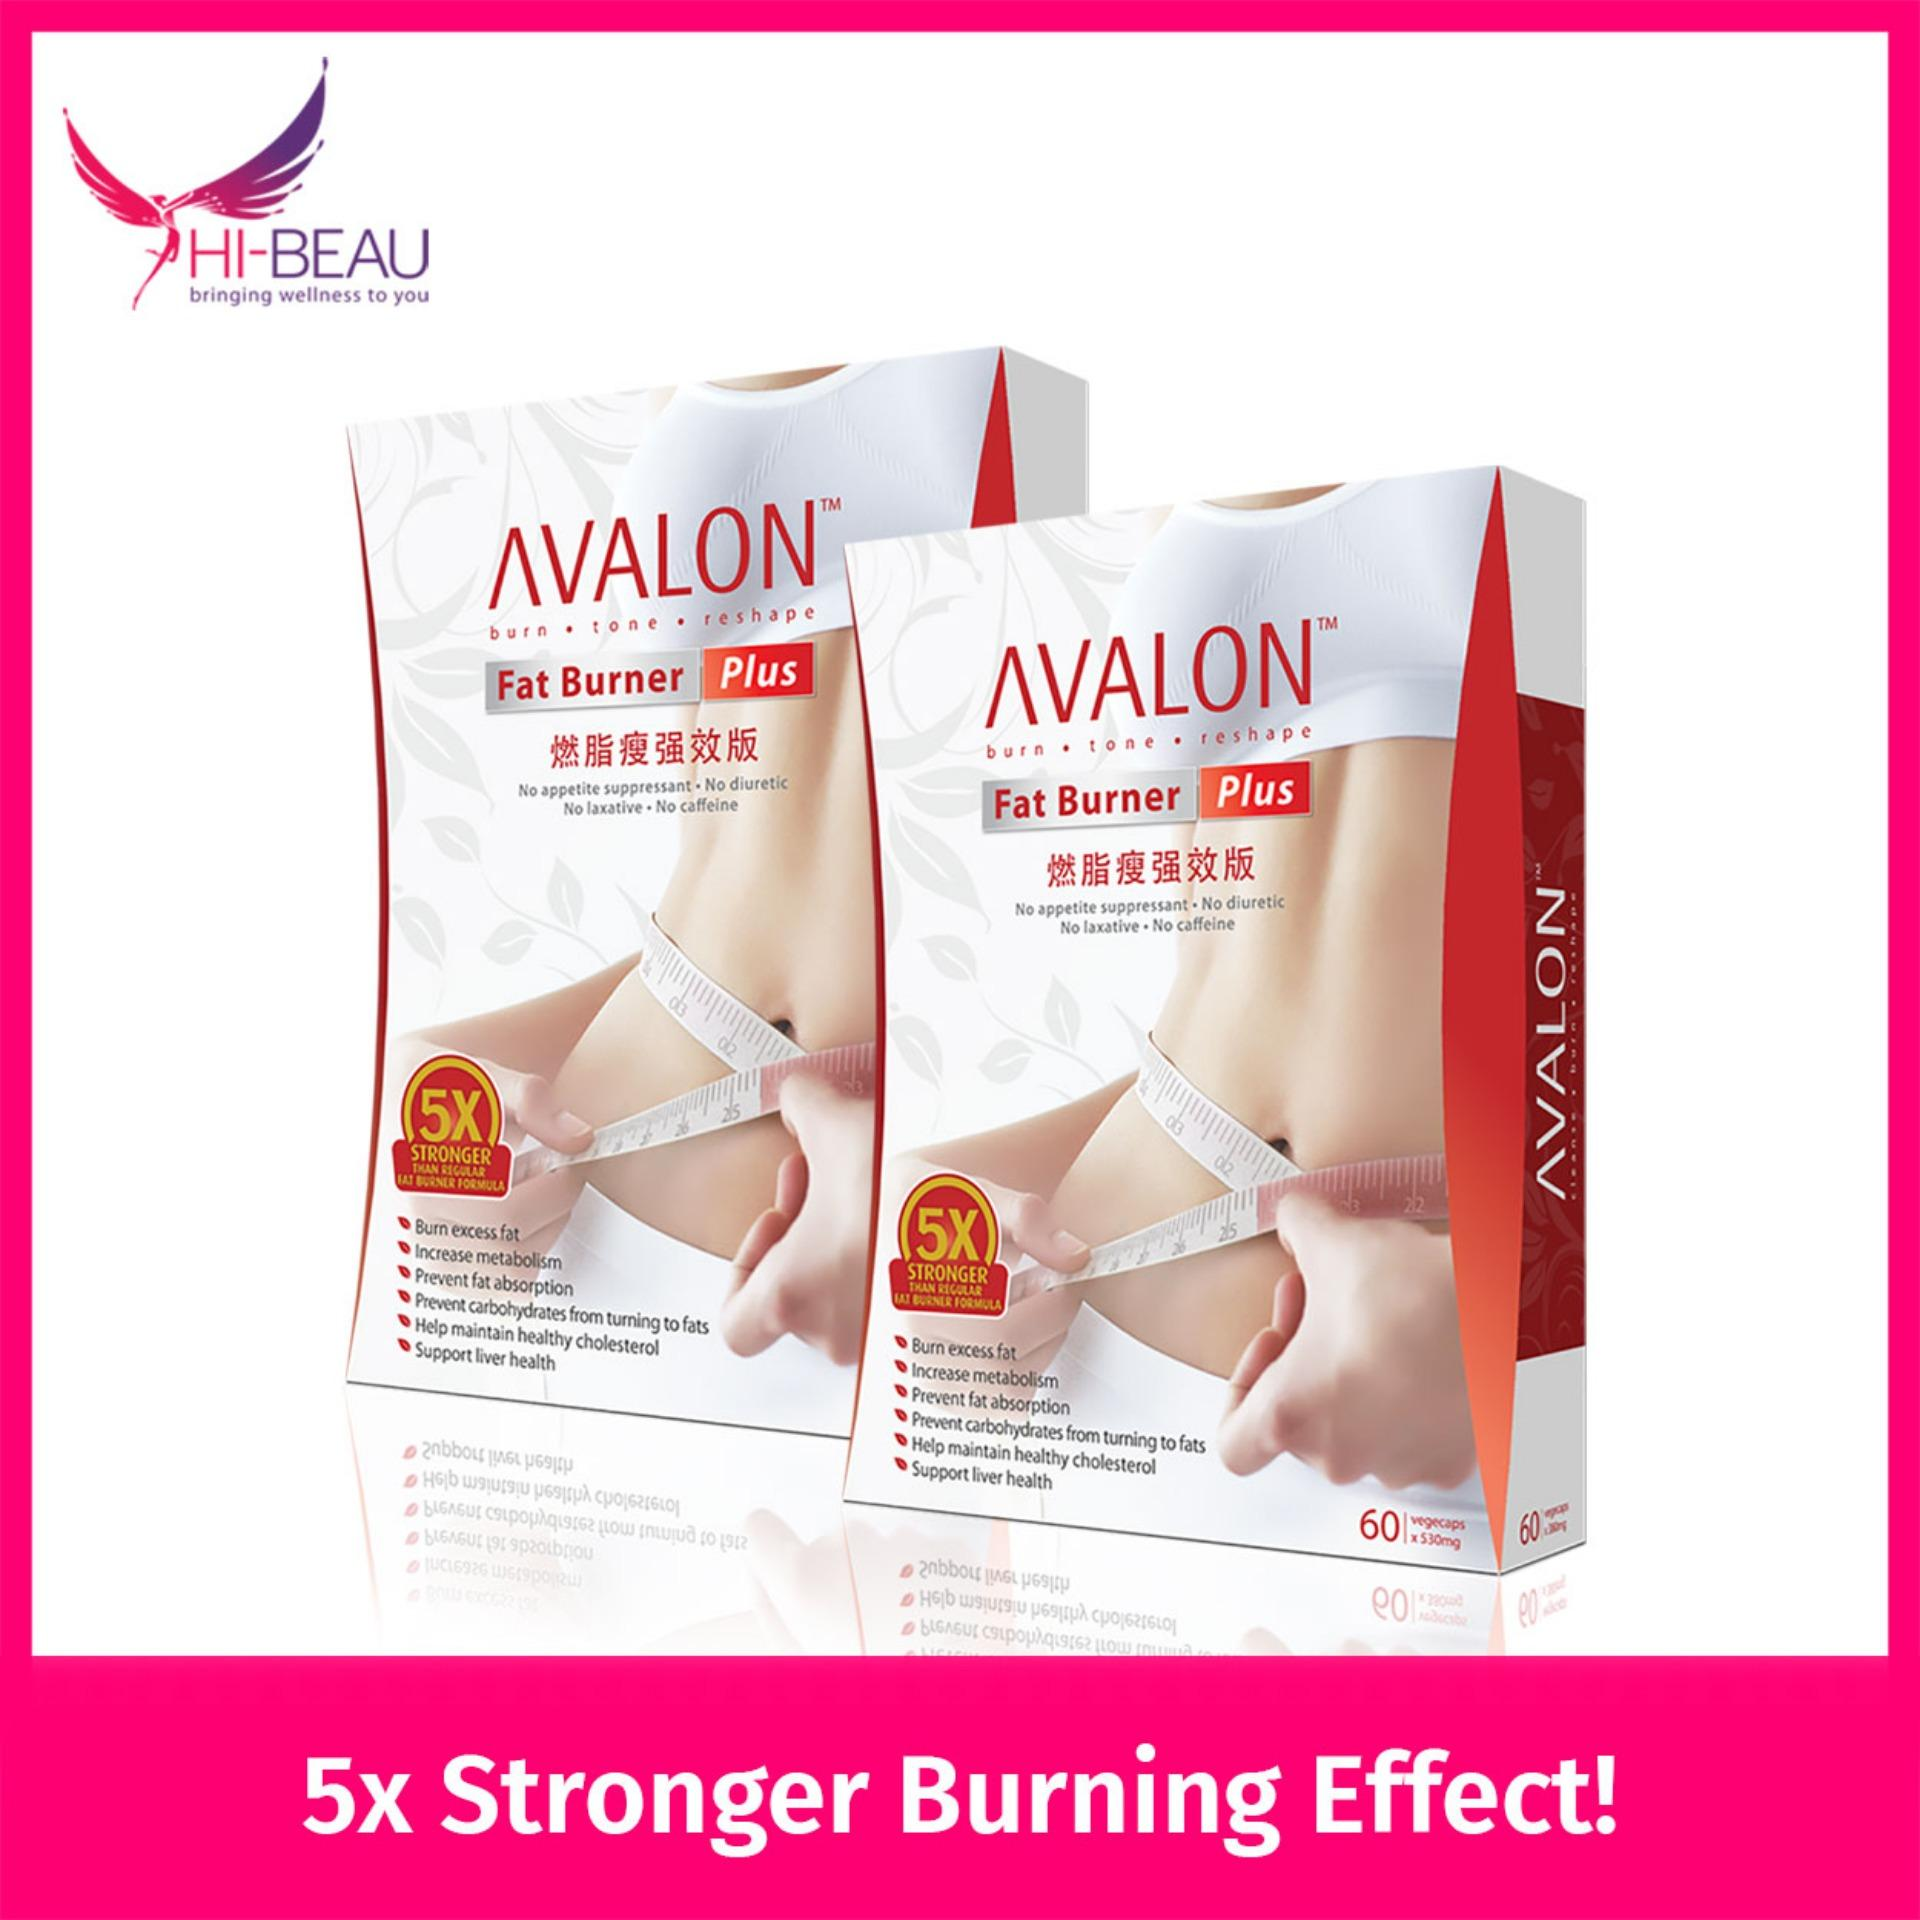 How Do I Get Avalon Fat Burner Plus Twin Pack